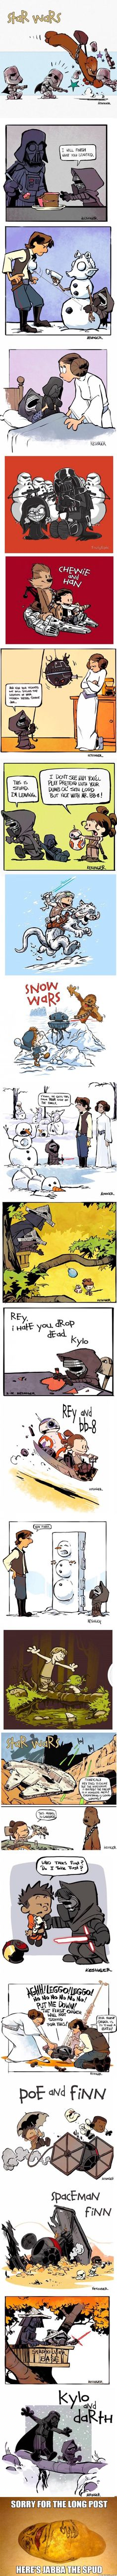 Force Awakens In The Style Of Calvin And Hobbes by Brian Kesinger